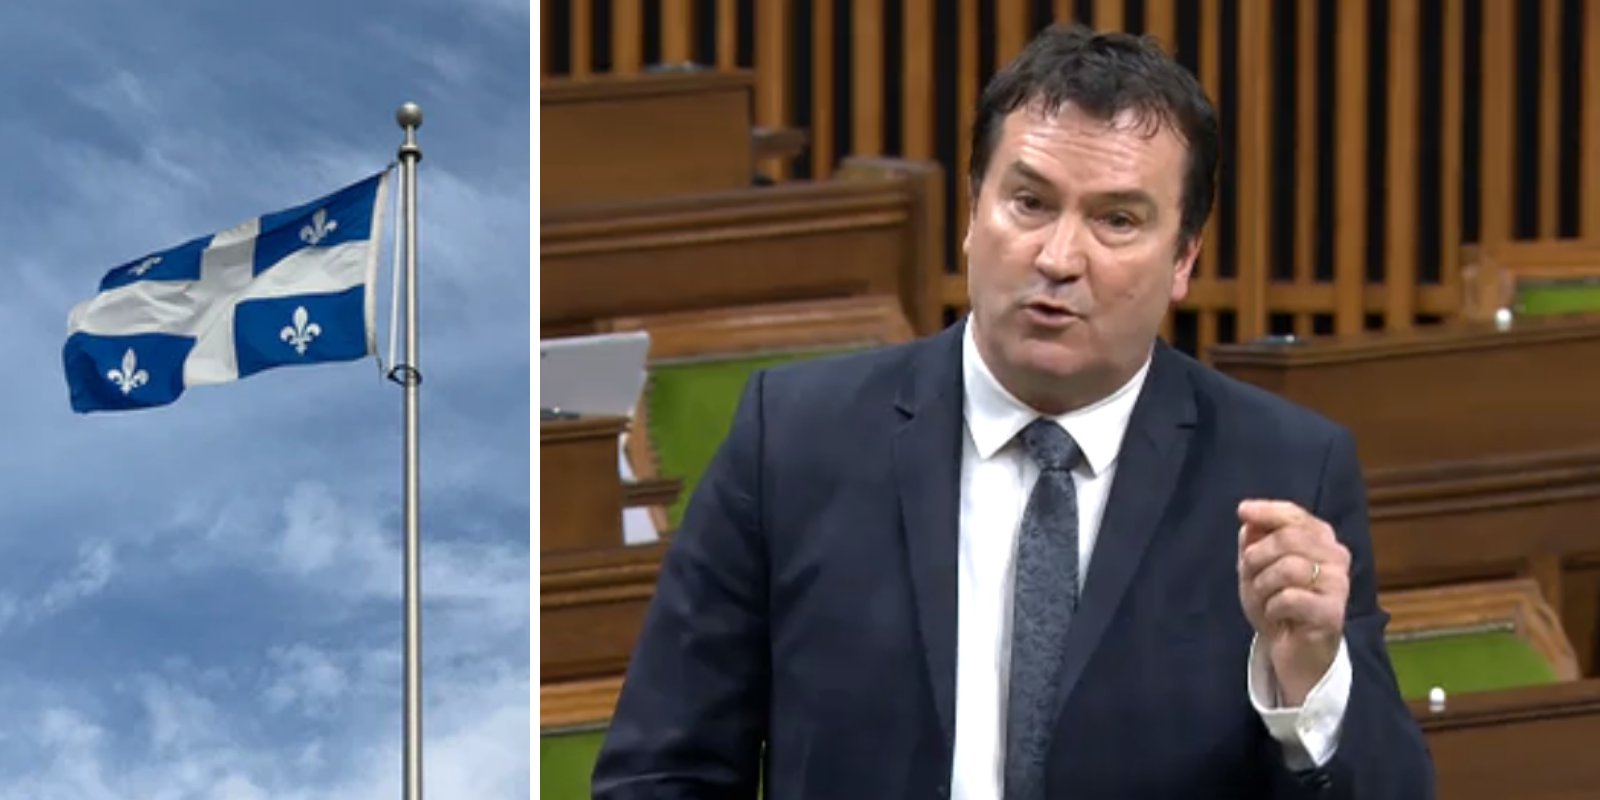 WATCH: Quebec MP complains that life-saving medical equipment doesn't have French labelling, calls it a 'Trojan Horse'